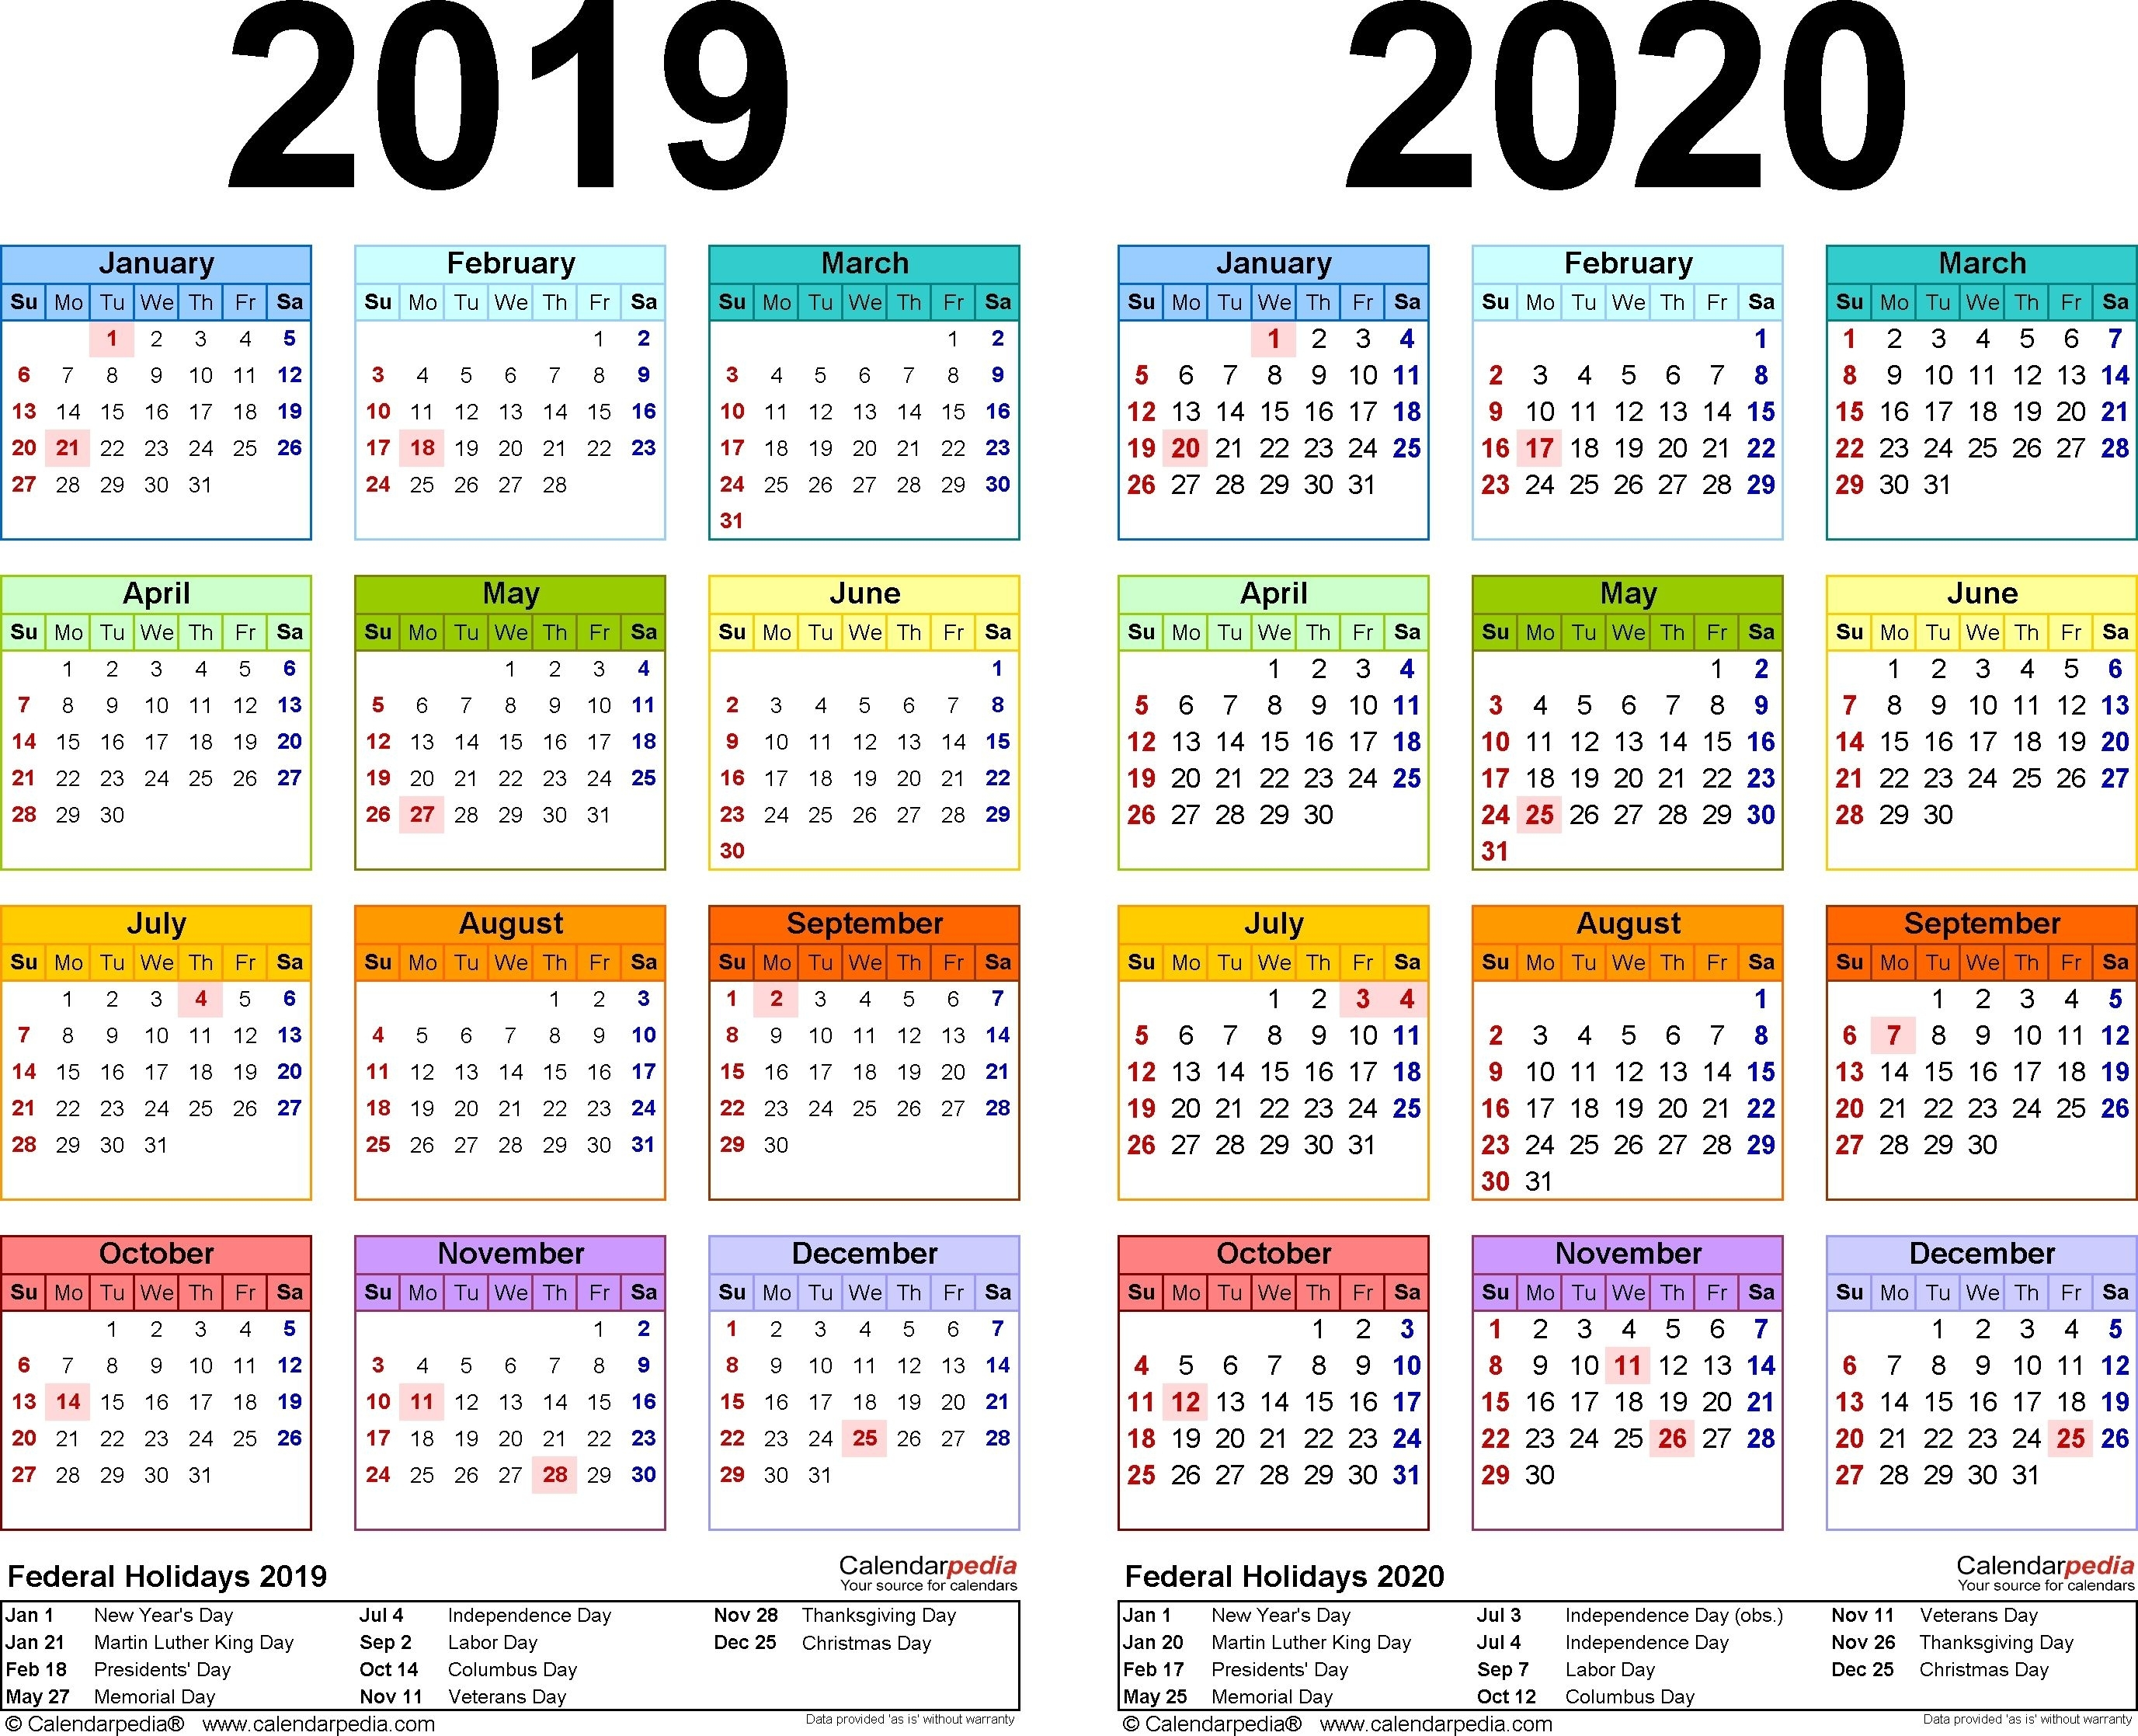 2019-2020 Calendar - Free Printable Two-Year Pdf Calendars in Microsoft Word Calendar Template 2019-2020